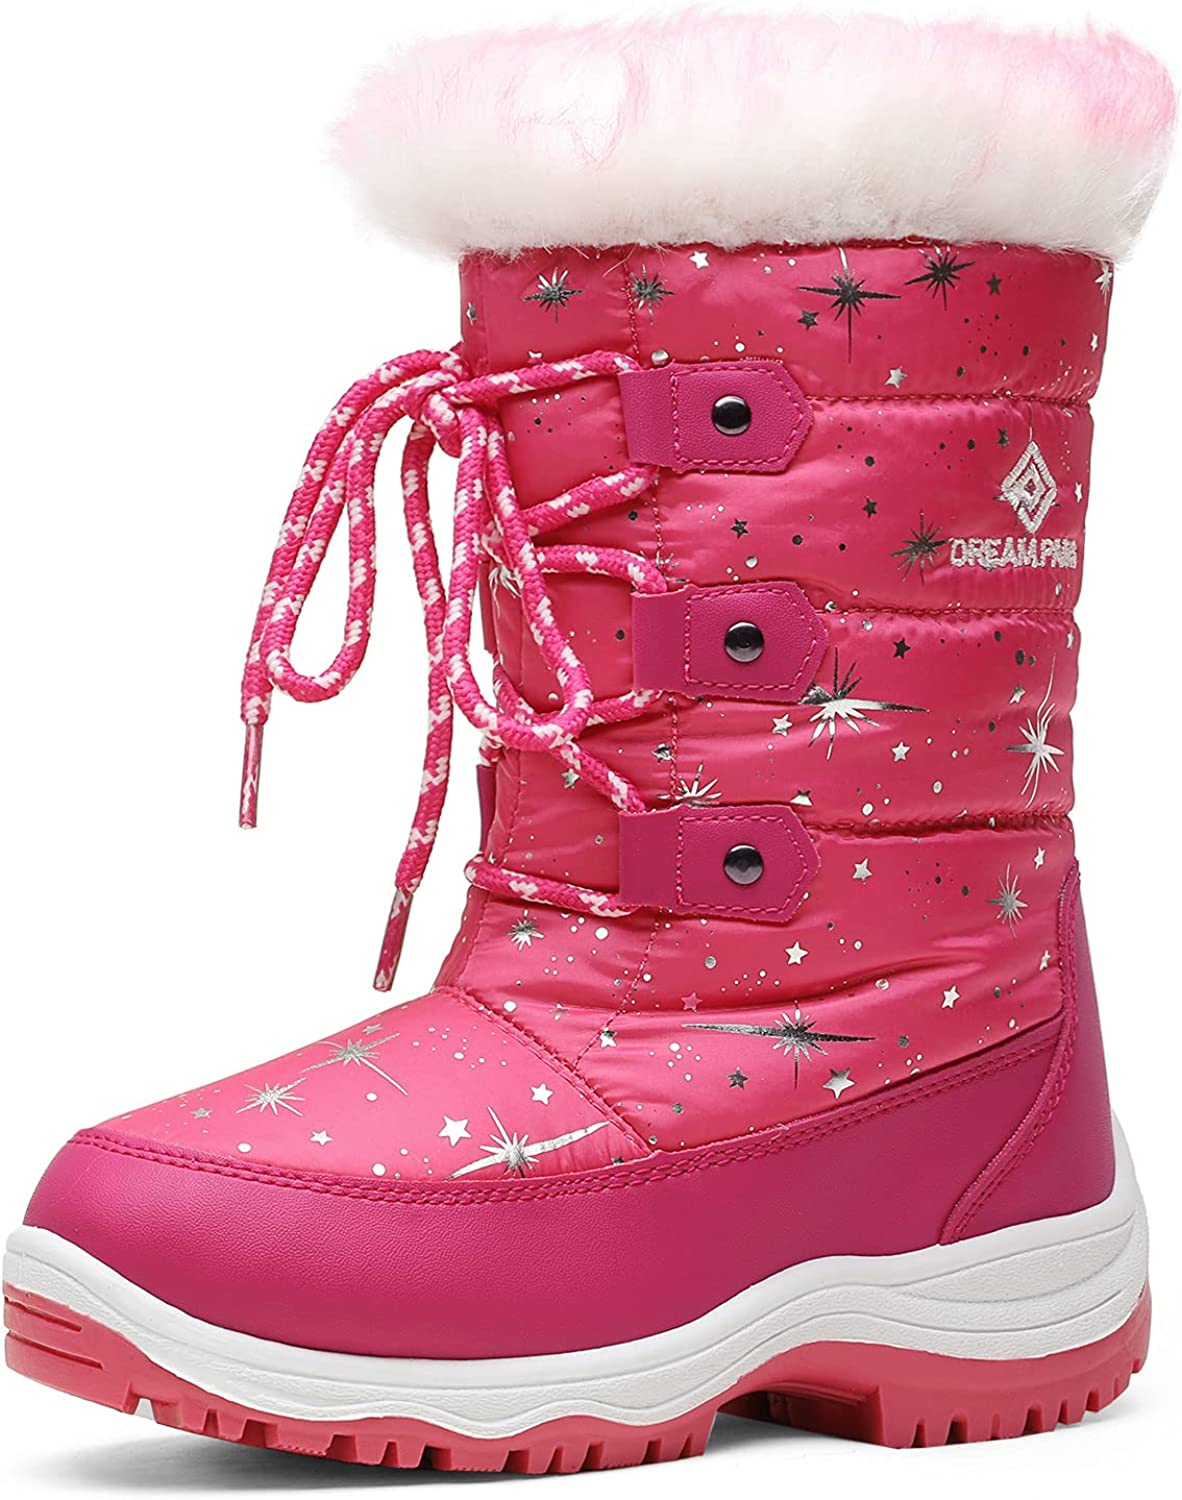 DREAM PAIRS Boys Girls Ranking TOP9 Chicago Mall Nordic Boots Winter Snow Knee High